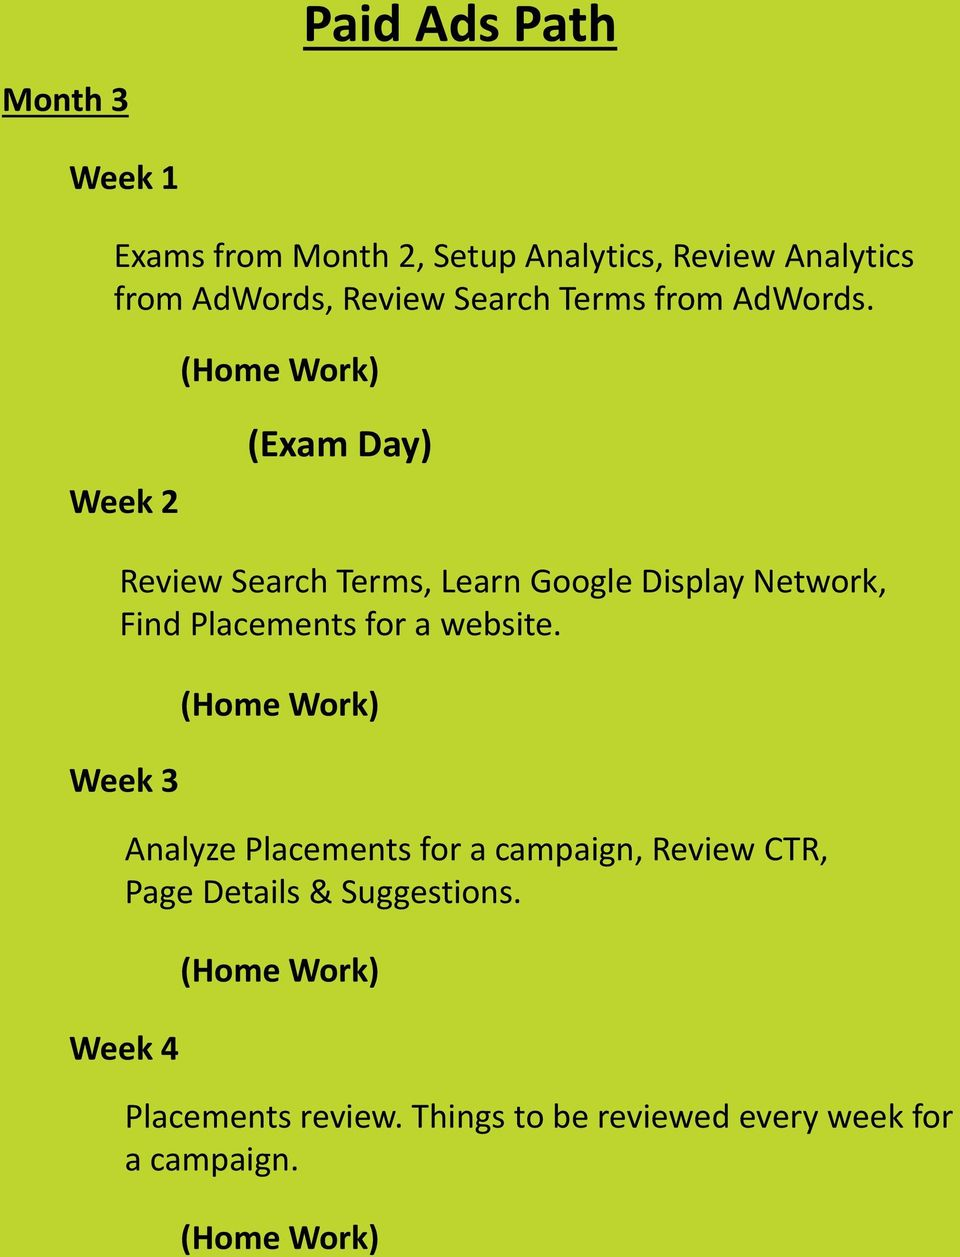 Week 2 Review Search Terms, Learn Google Display Network, Find Placements for a website.